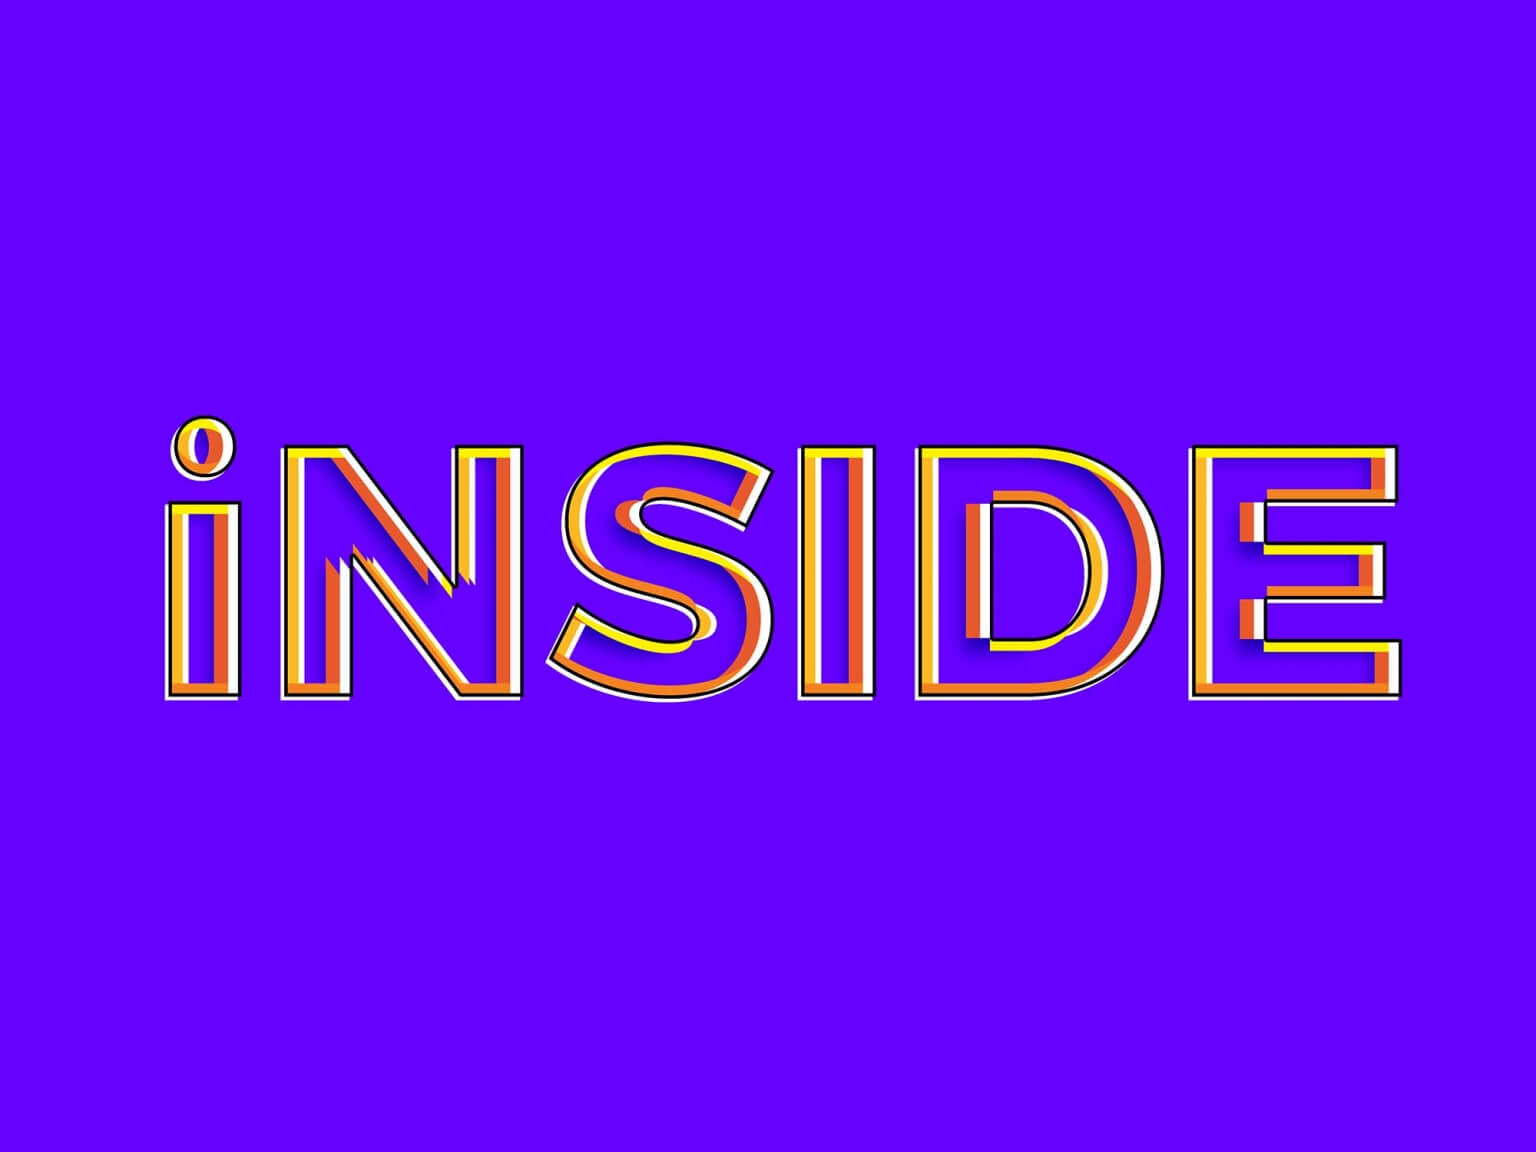 Free Inside Photoshop Text Effect (PSD)